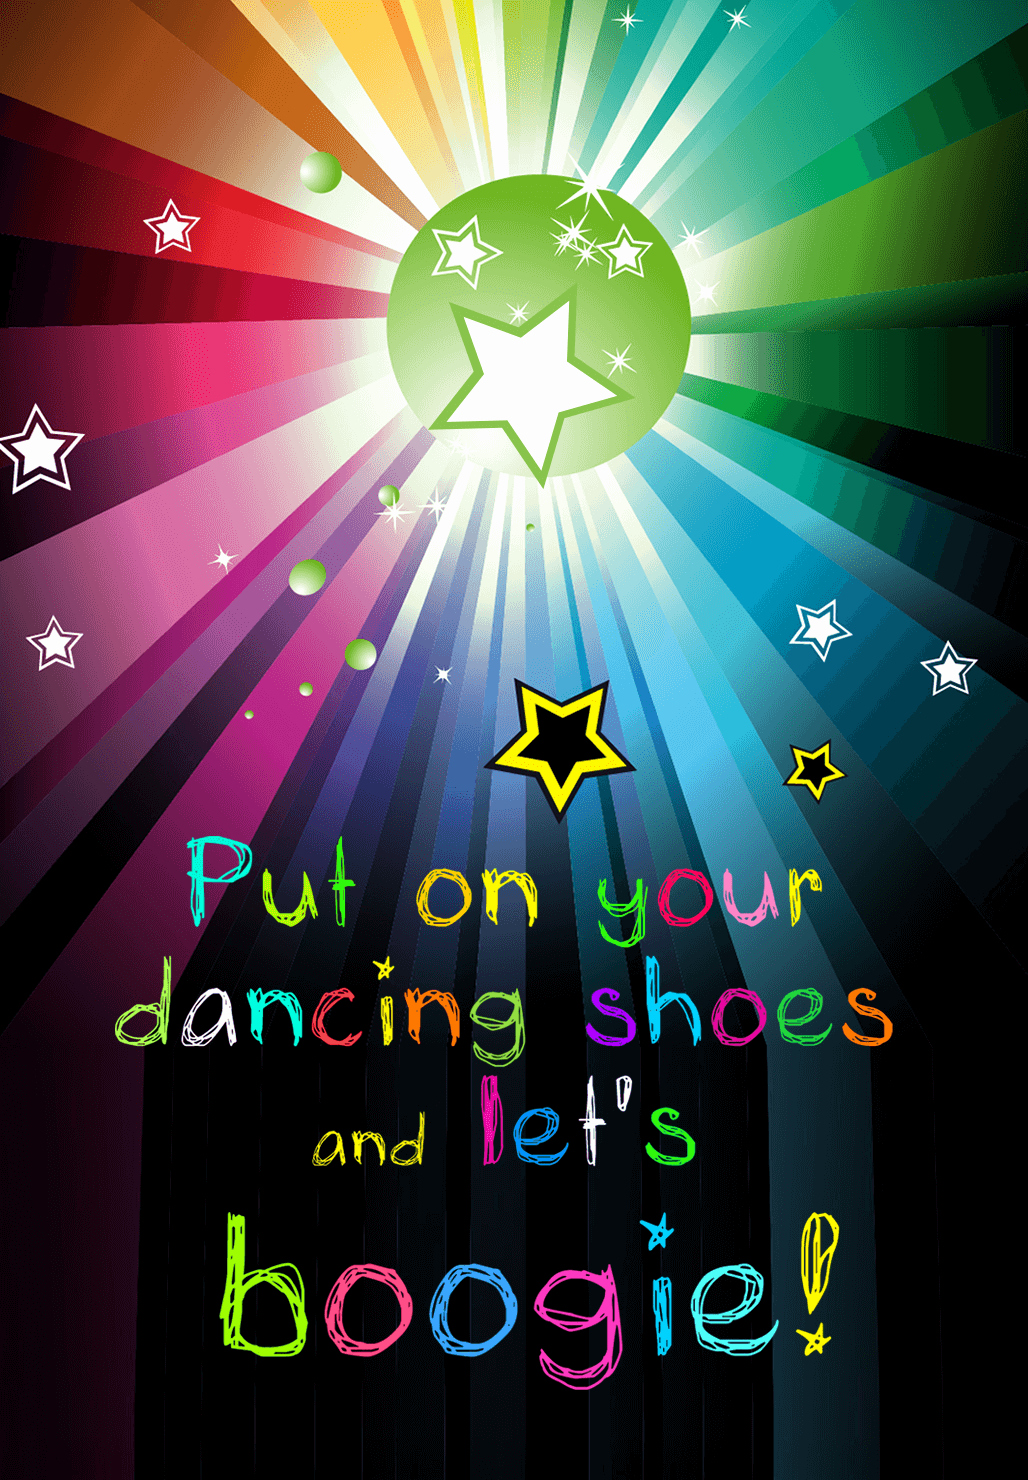 Dance Party Invitation Template Inspirational Lets Boogie Free Printable Party Invitation Template